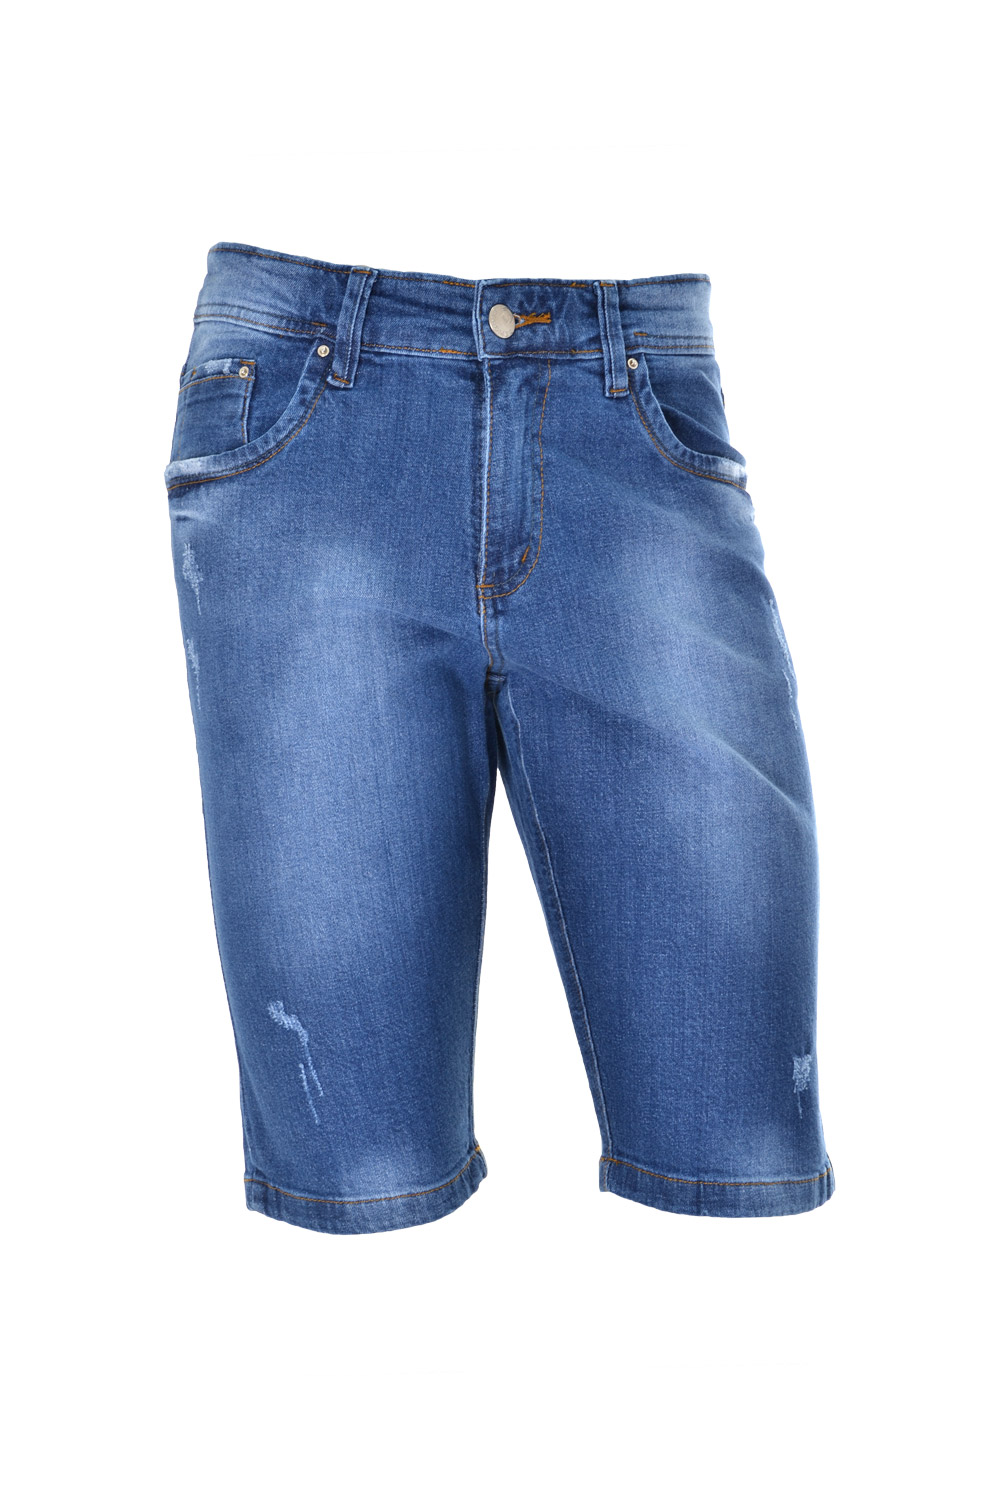 BERMUDA BLUES SLIM POLIALGODAO E ELASTANO STRETCH STONED AZUL MEDIO